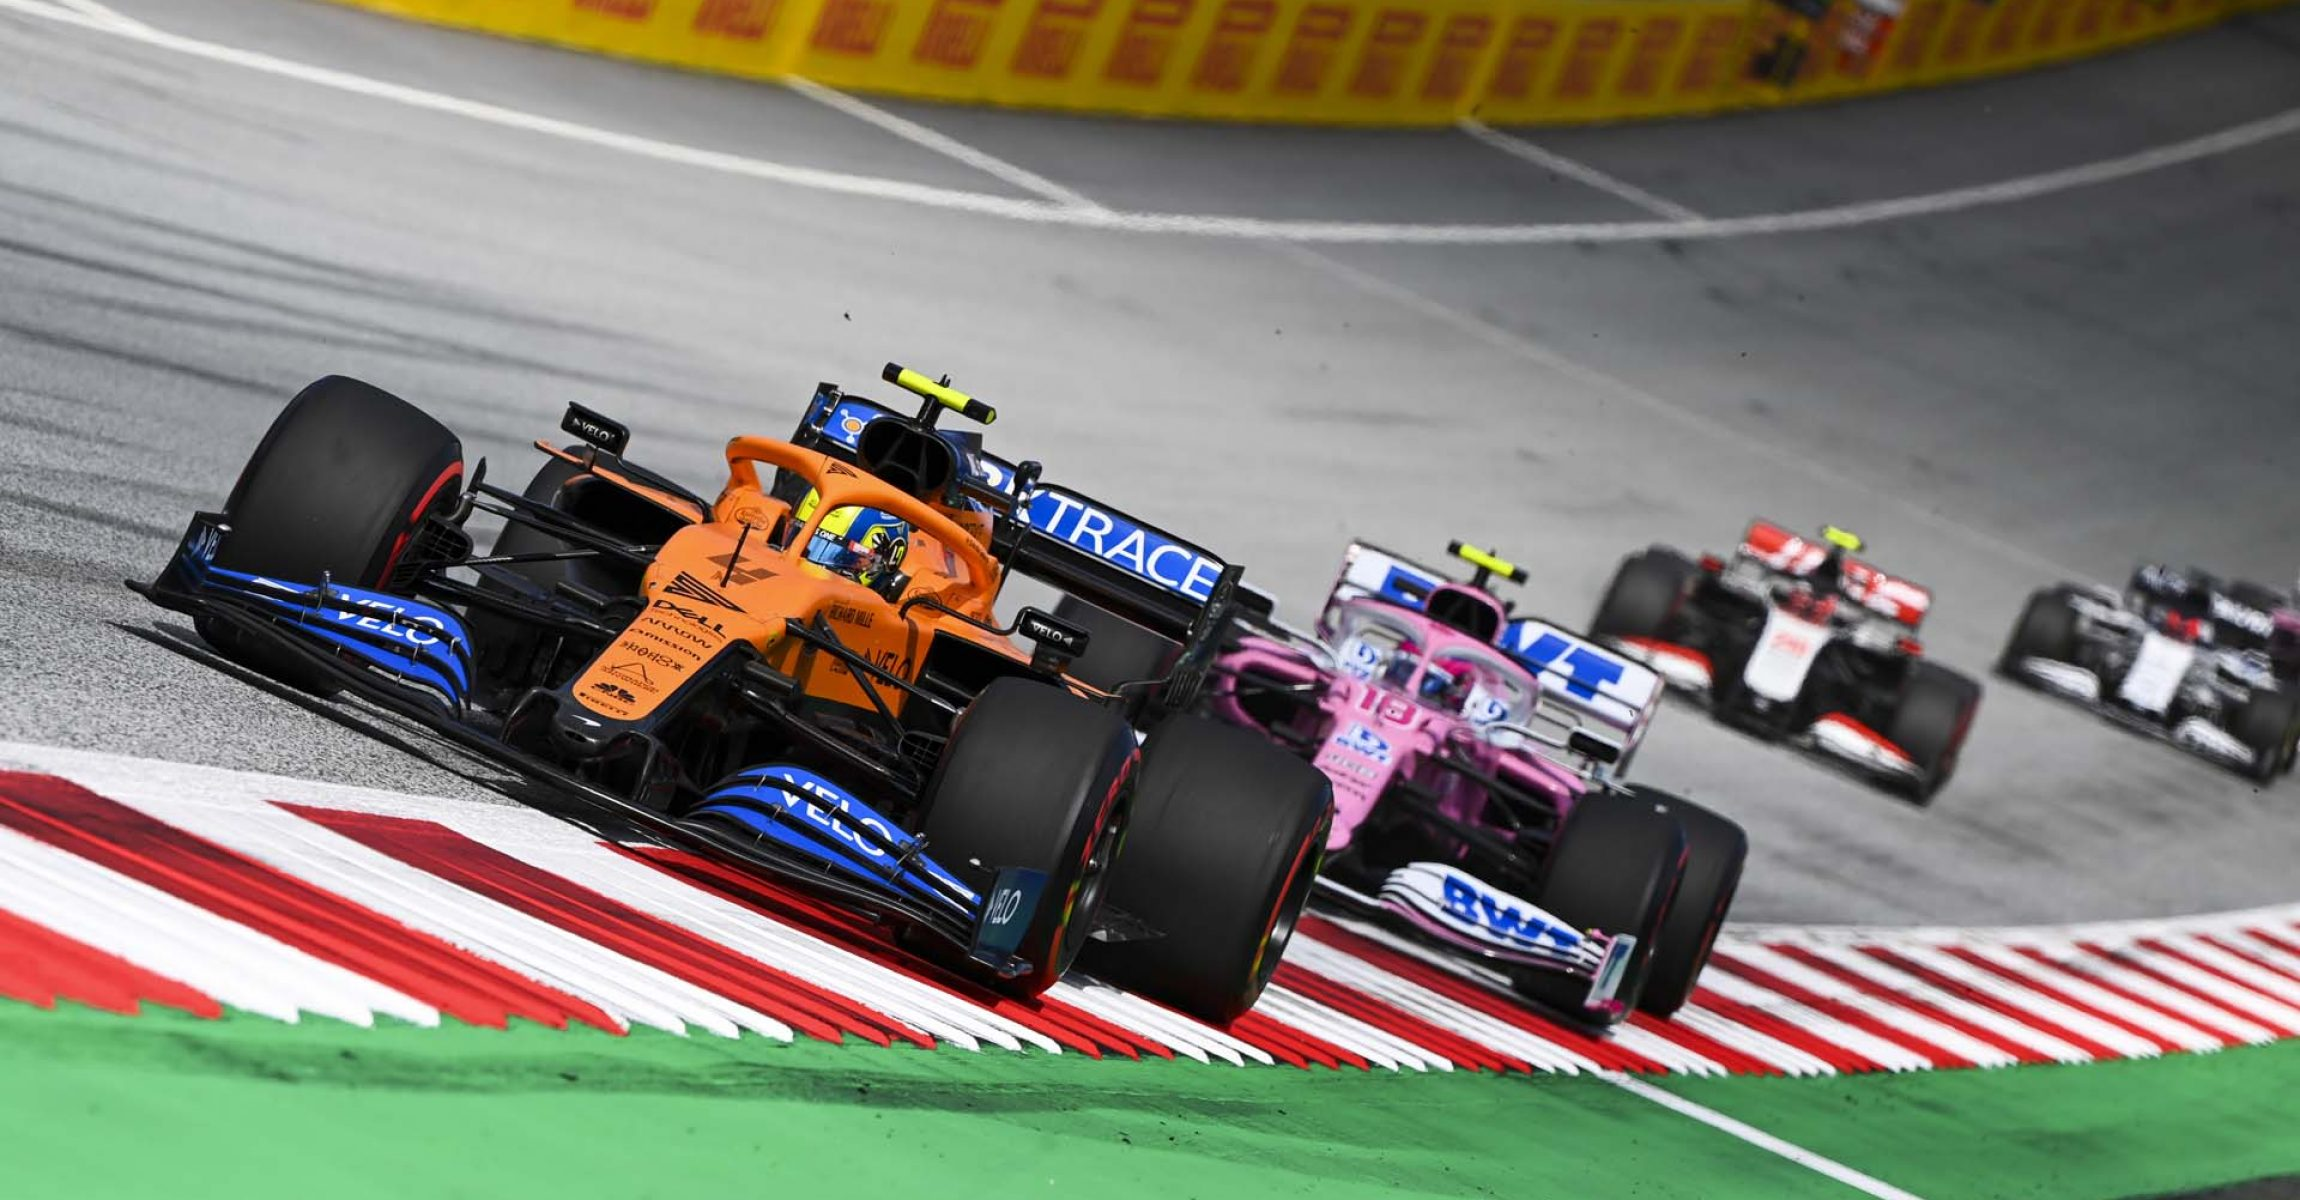 RED BULL RING, AUSTRIA - JULY 12: Lando Norris, McLaren MCL35, Lance Stroll, Racing Point RP20 during the Styrian GP at Red Bull Ring on Sunday July 12, 2020 in Spielberg, Austria. (Photo by Mark Sutton / LAT Images)